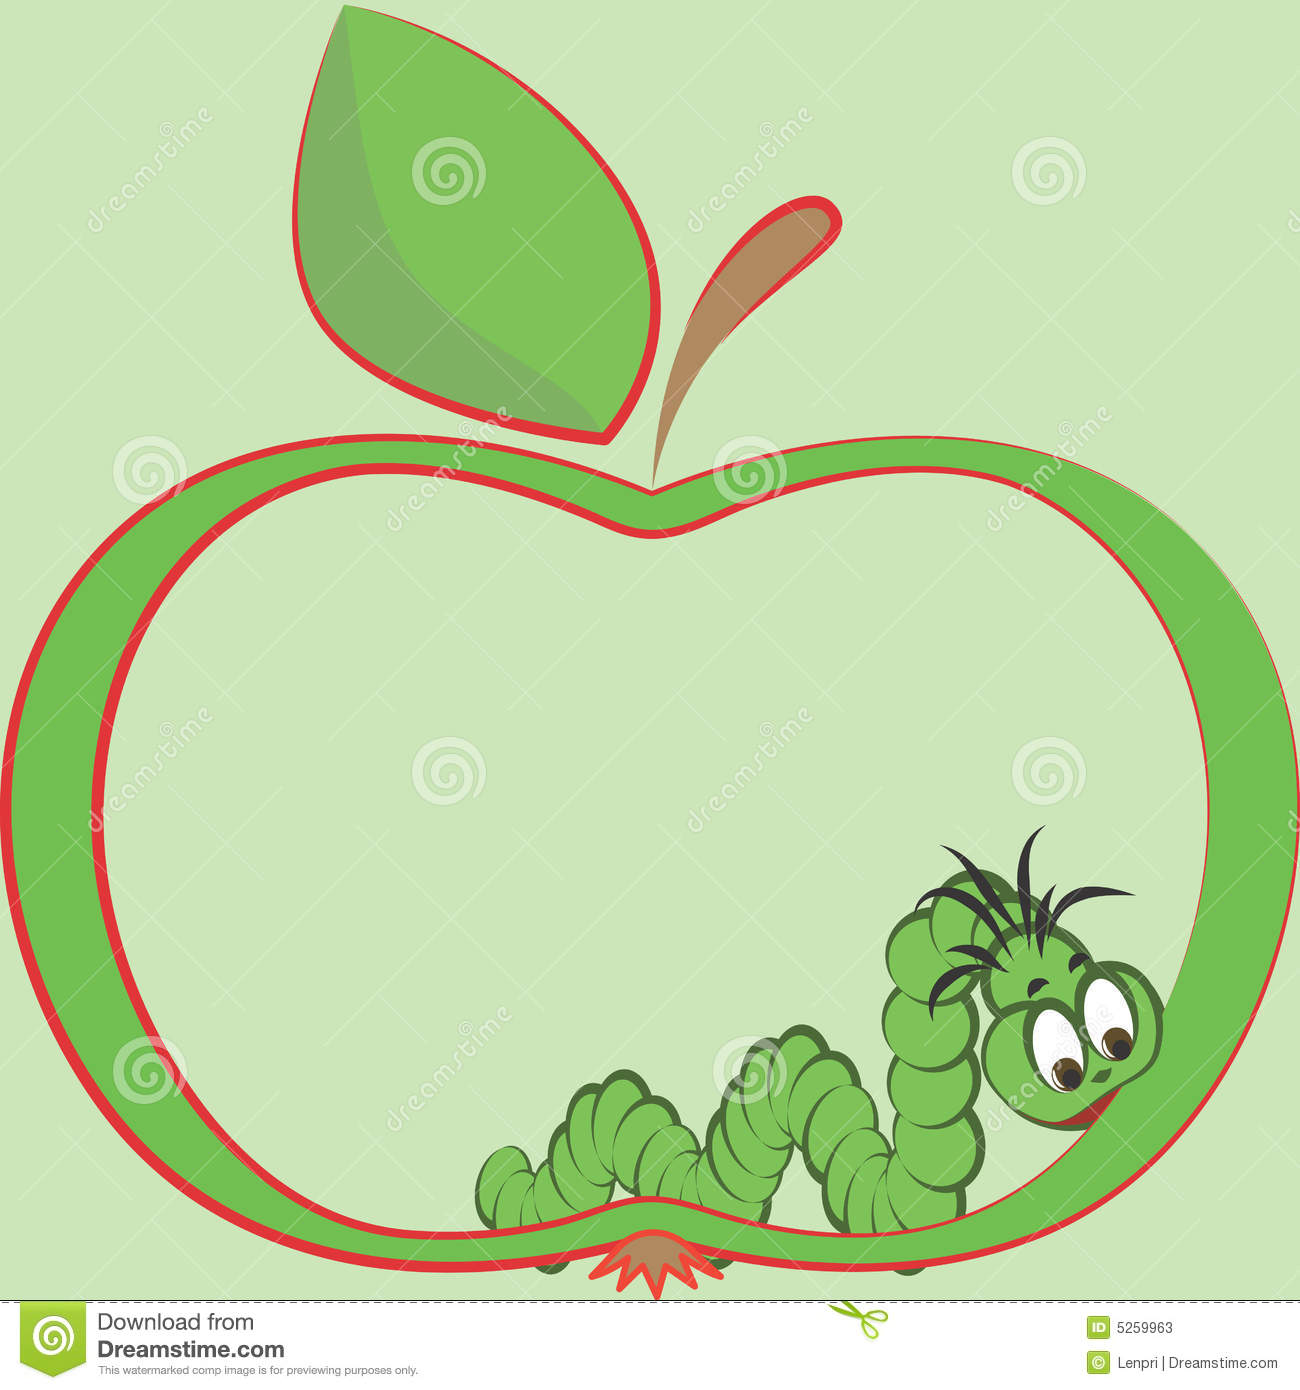 Apple And Worm Stock Photos - Image: 5259963